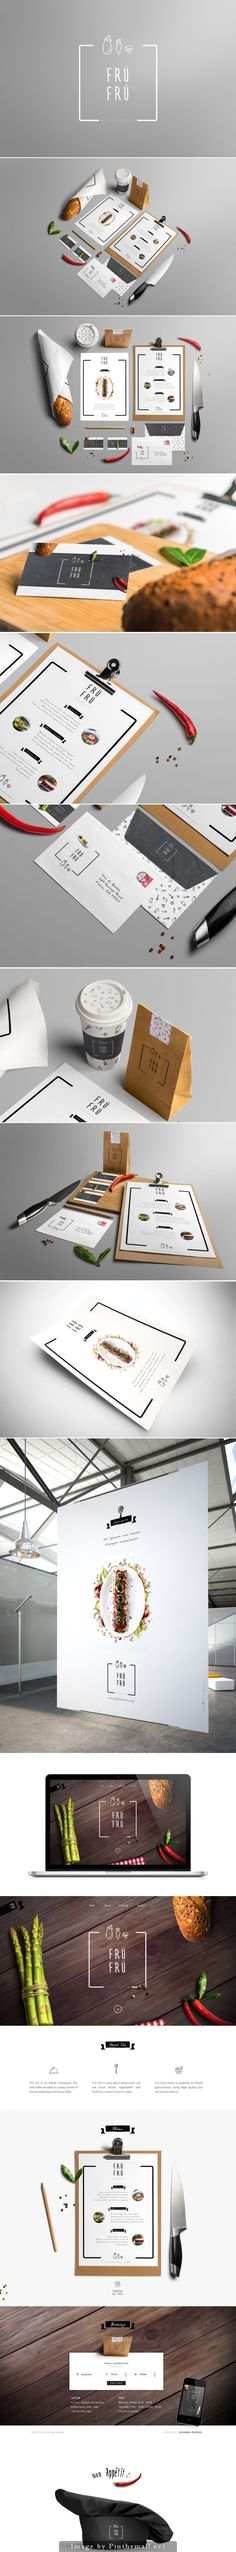 It's just Frú Frú #identity #packaging #branding designed by Johanna Roussel PD